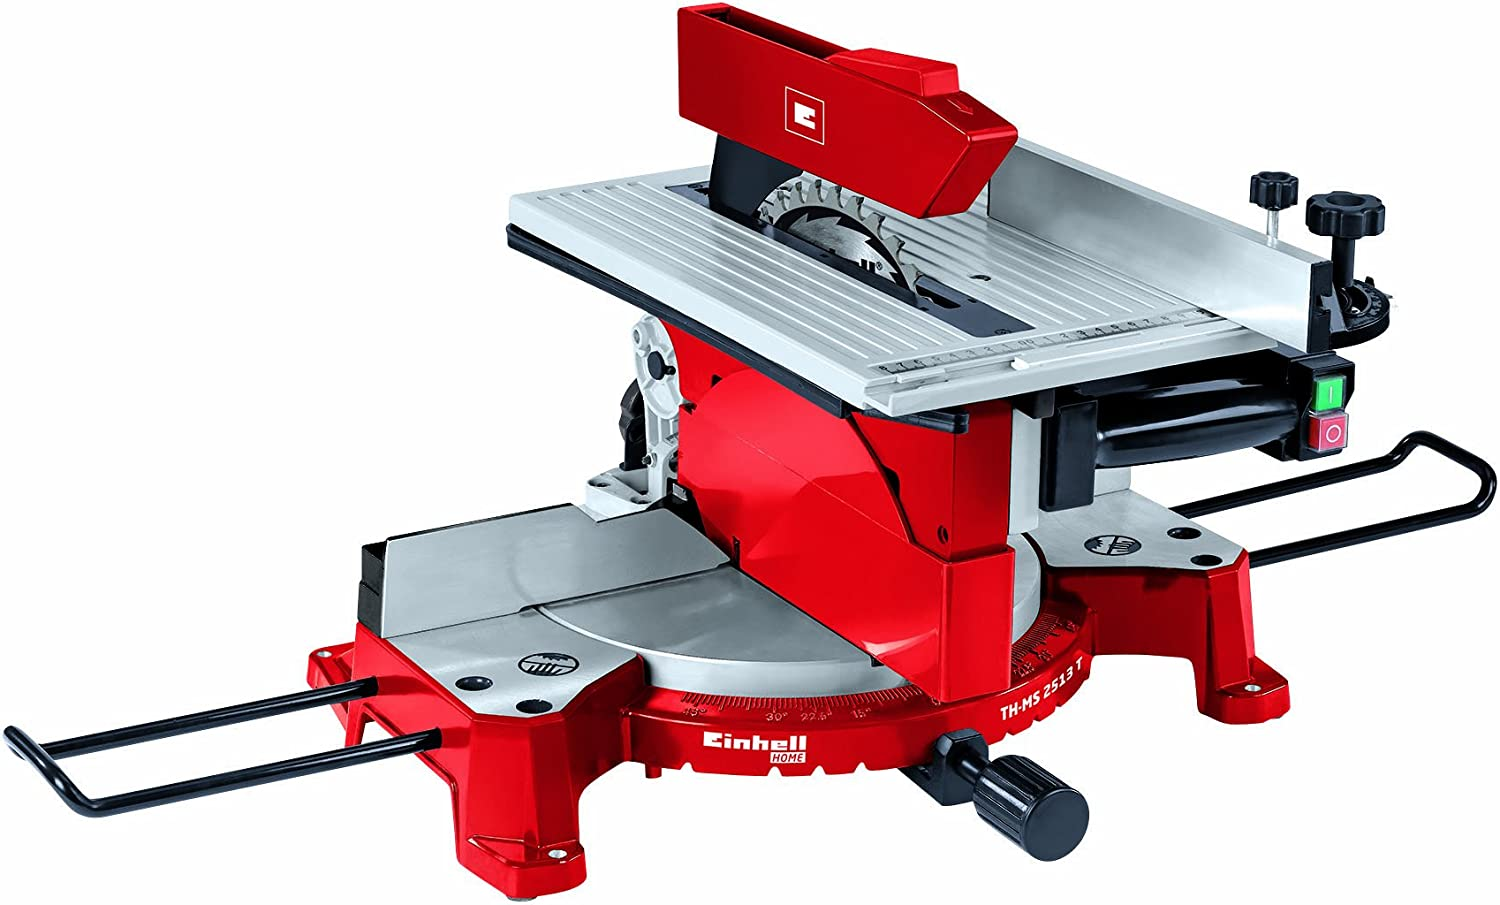 Einhell TH-MS 2513 T Ingletadora de doble corte, 1800 W, 230 V ...